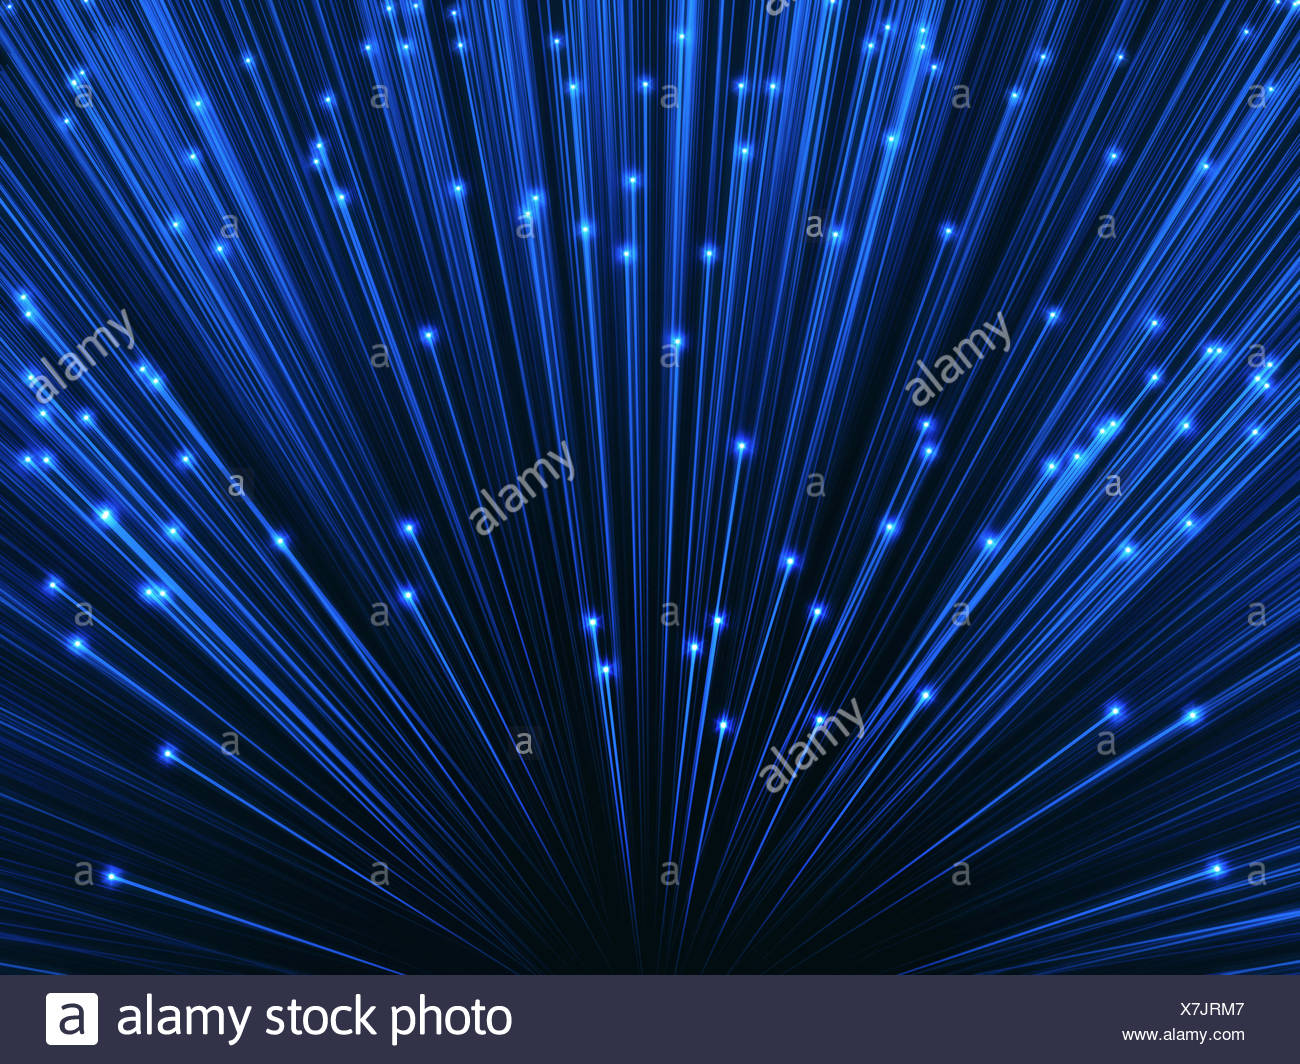 Fibre optics, illustration. - Stock Image